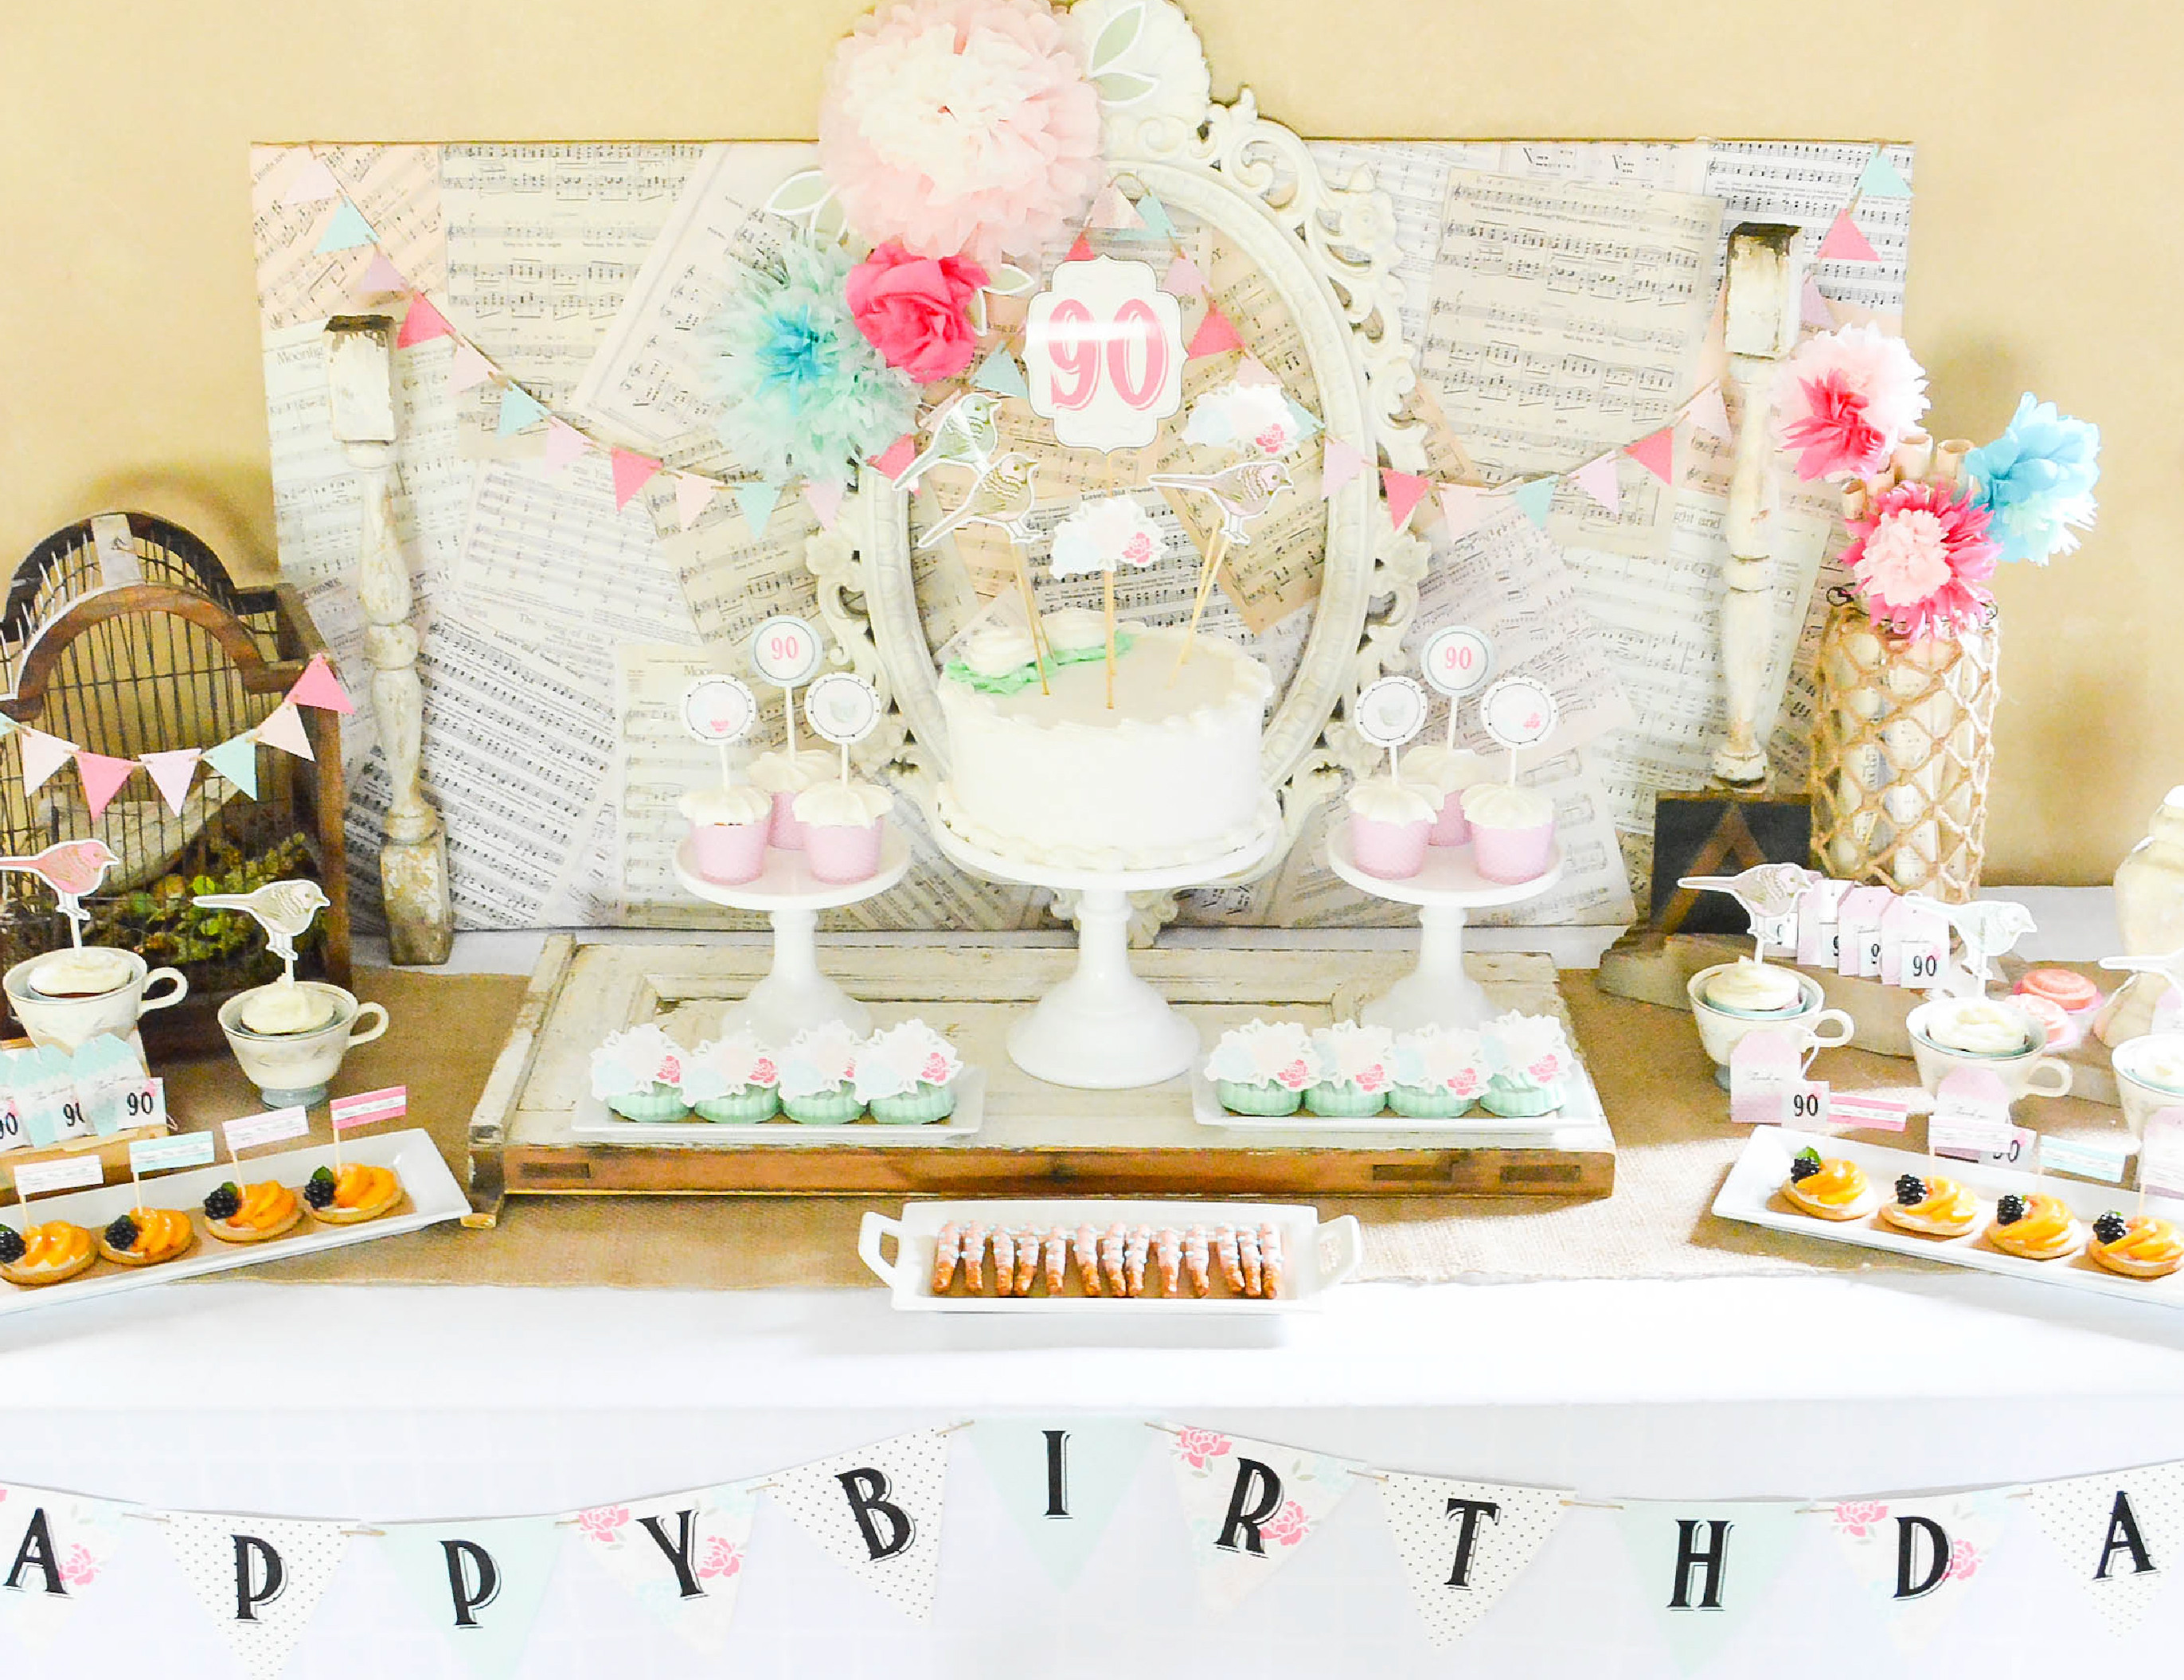 Best ideas about 90th Birthday Decorations . Save or Pin A Shabby Chic Vintage Rose 90th Birthday Celebration Now.